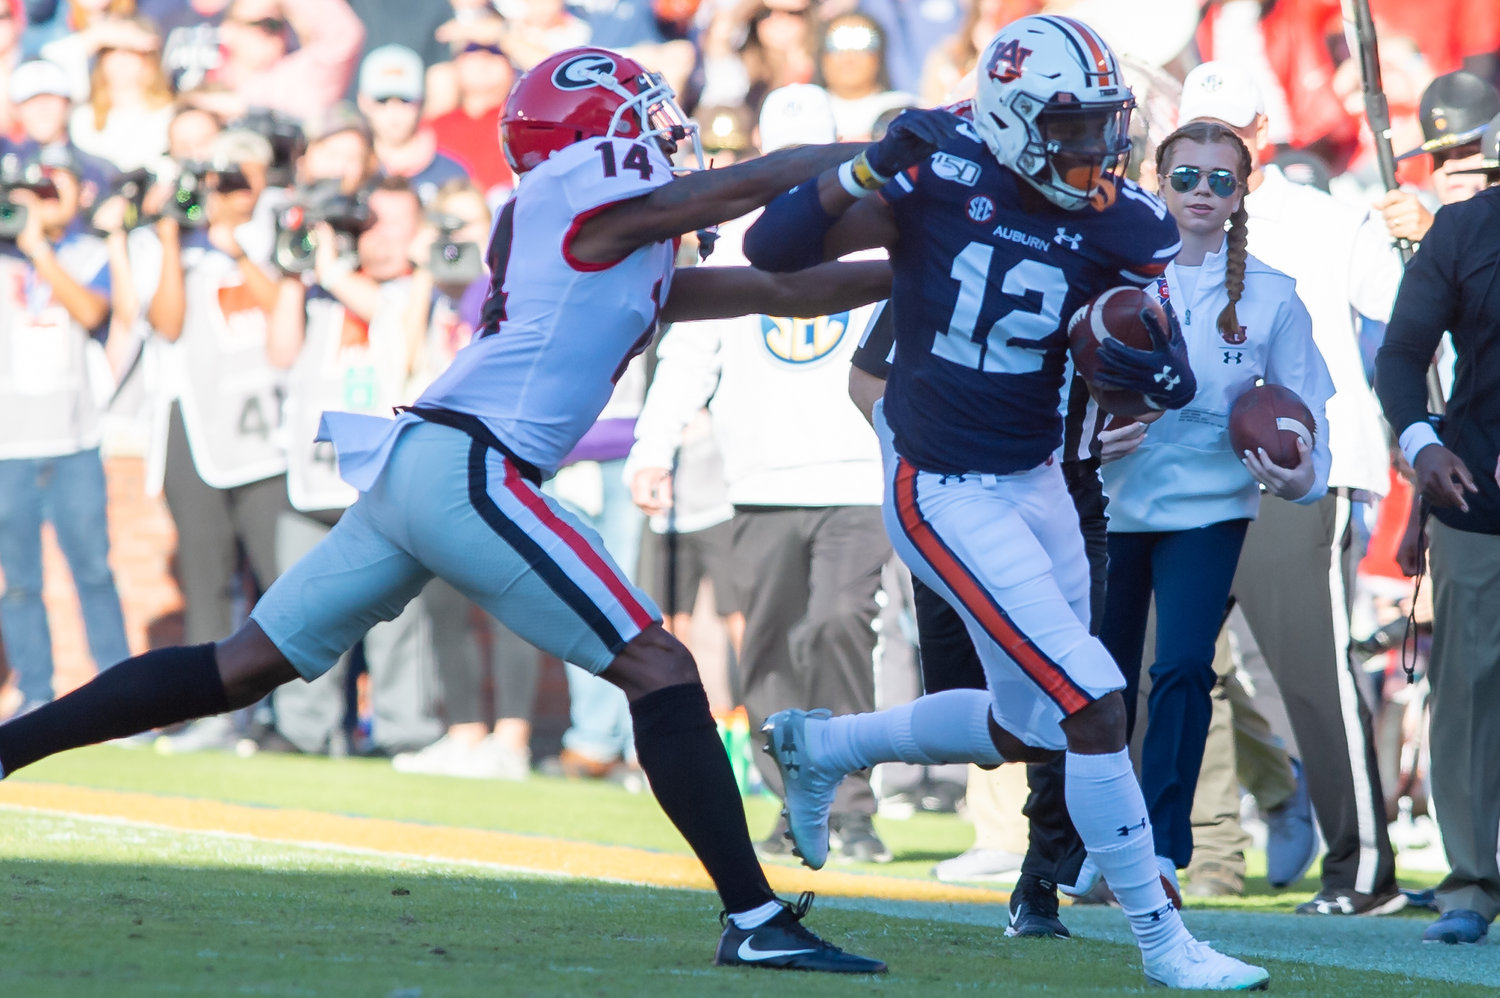 Georgia Bulldogs defensive back DJ Daniel (14) forces Auburn Tigers wide receiver Eli Stove (12) out of bounds during the first half of Saturday's game, at Jordan-Hare Stadium in Auburn,, AL. Daily Mountain Eagle -  Jeff Johnsey